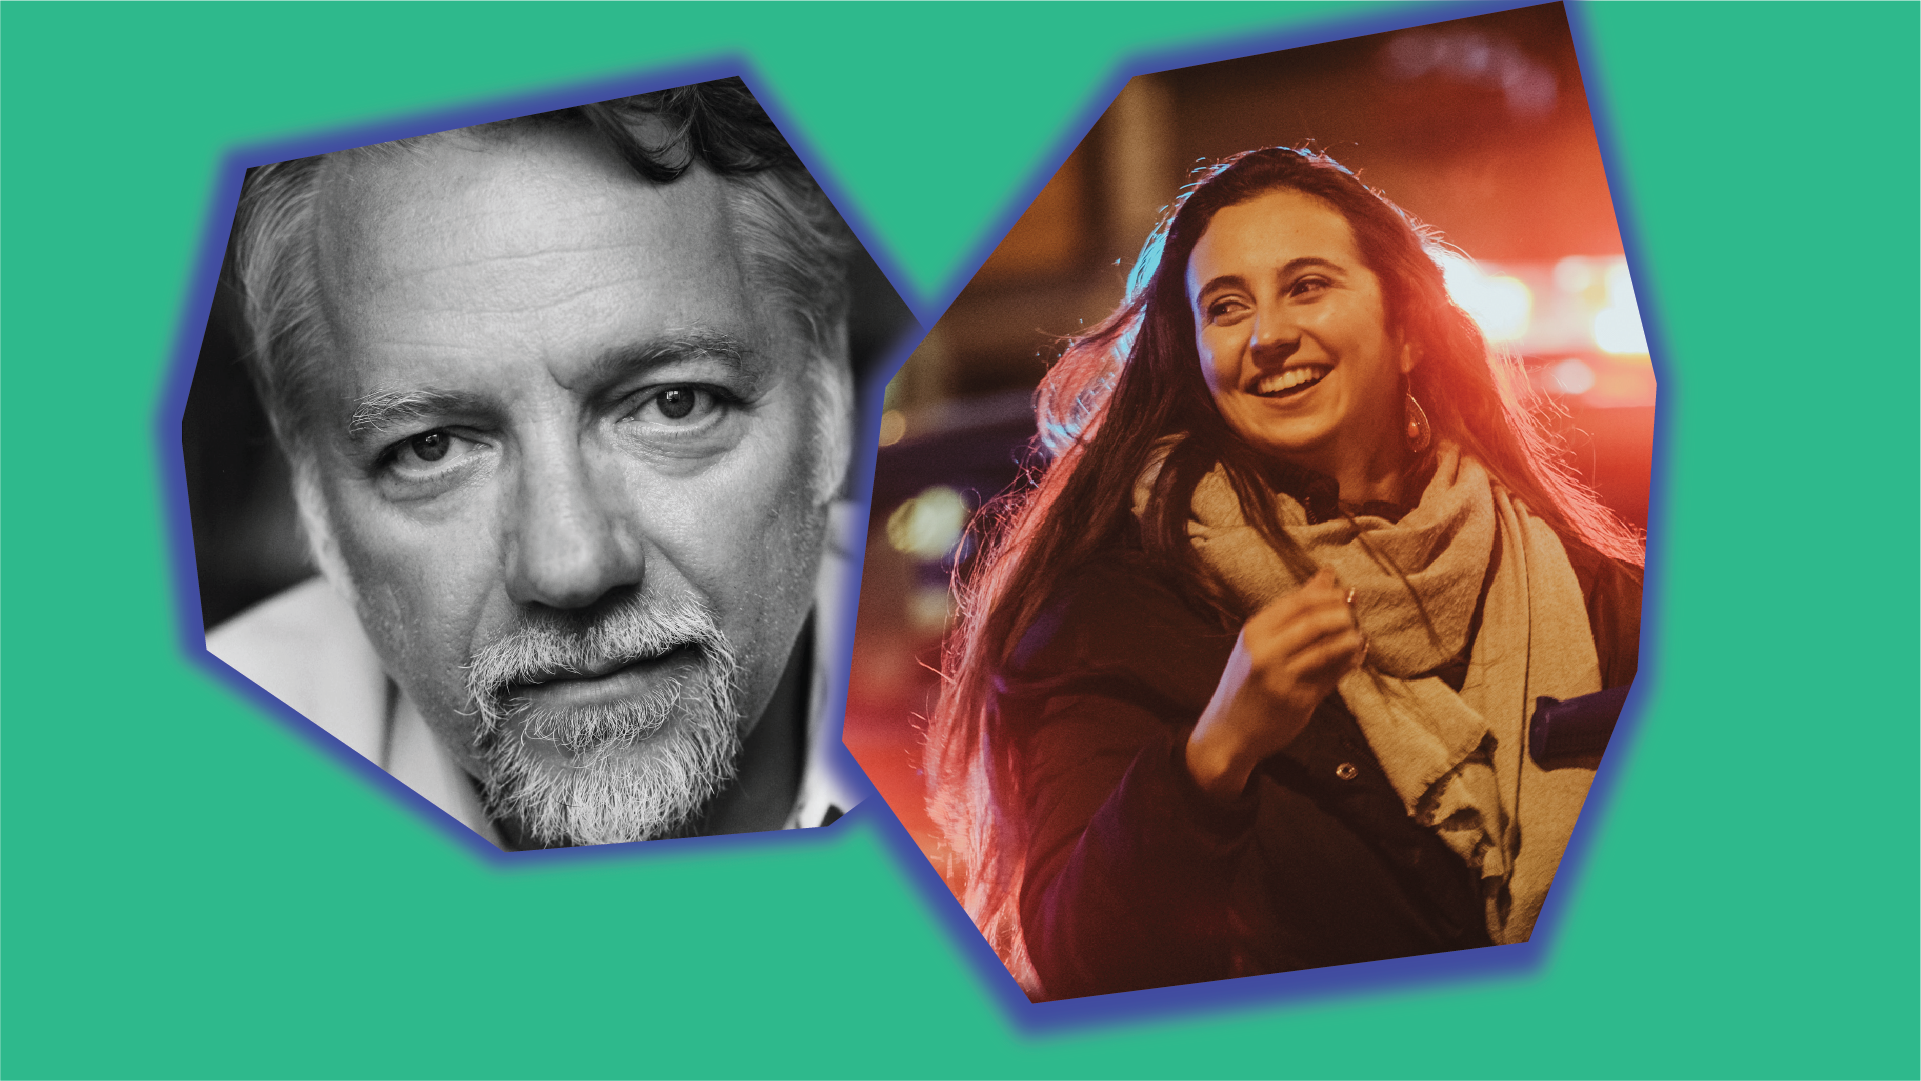 Green background with two asymetrical shapes each with a blue glow. In the left shape is Edward Burtynsky's headshot and in the left shape is Allie Rougeot.